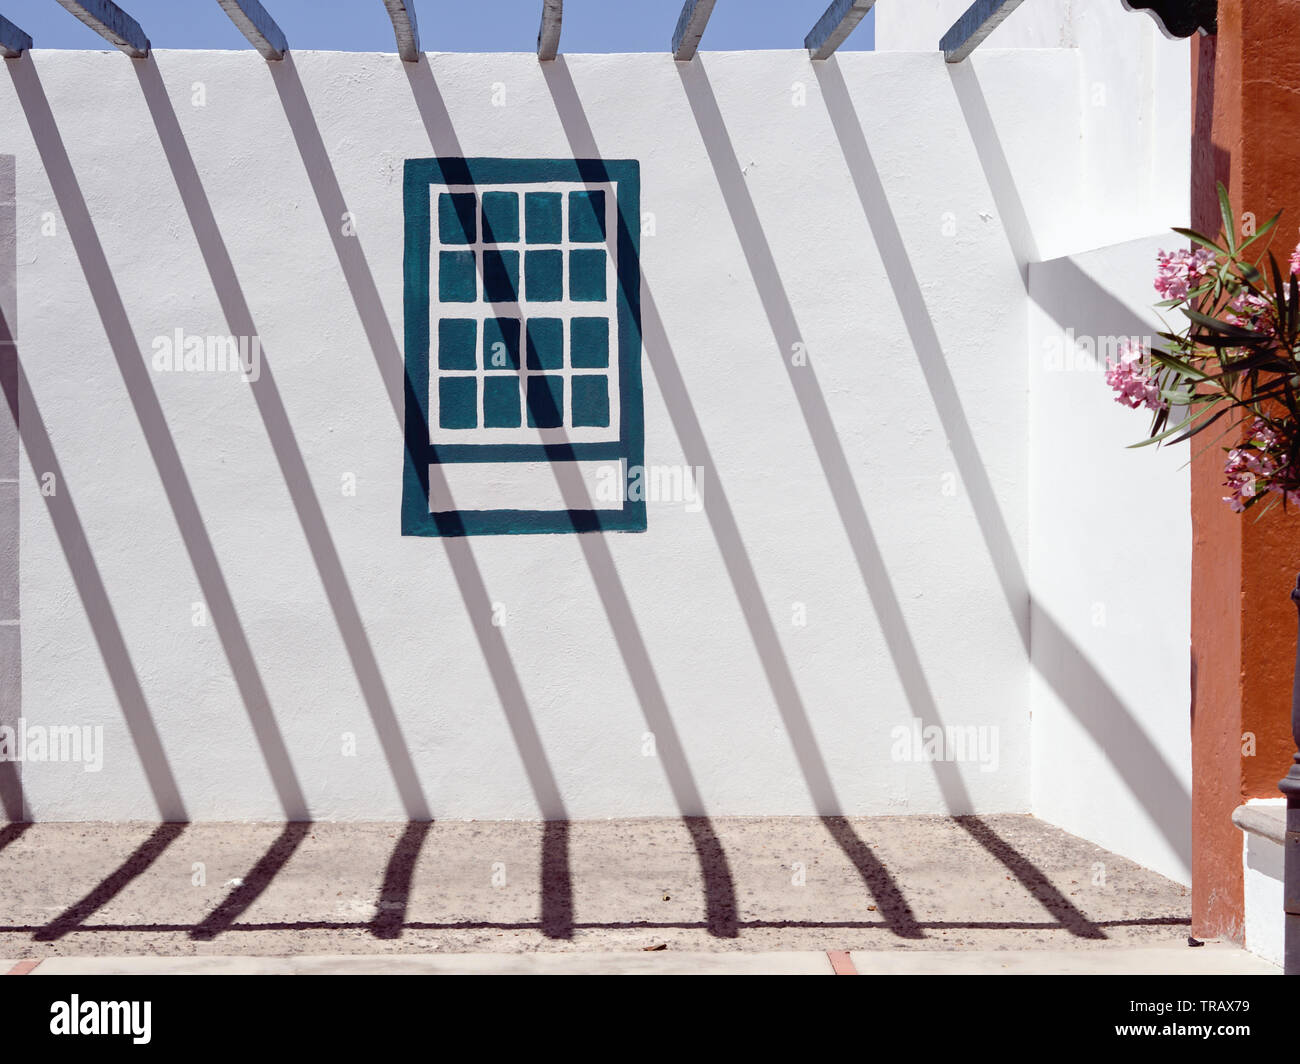 strong shadows of a metal grid cast a graphic pattern on a white wall diagonally from top left to bottom right, in the middle of the wall a window is - Stock Image